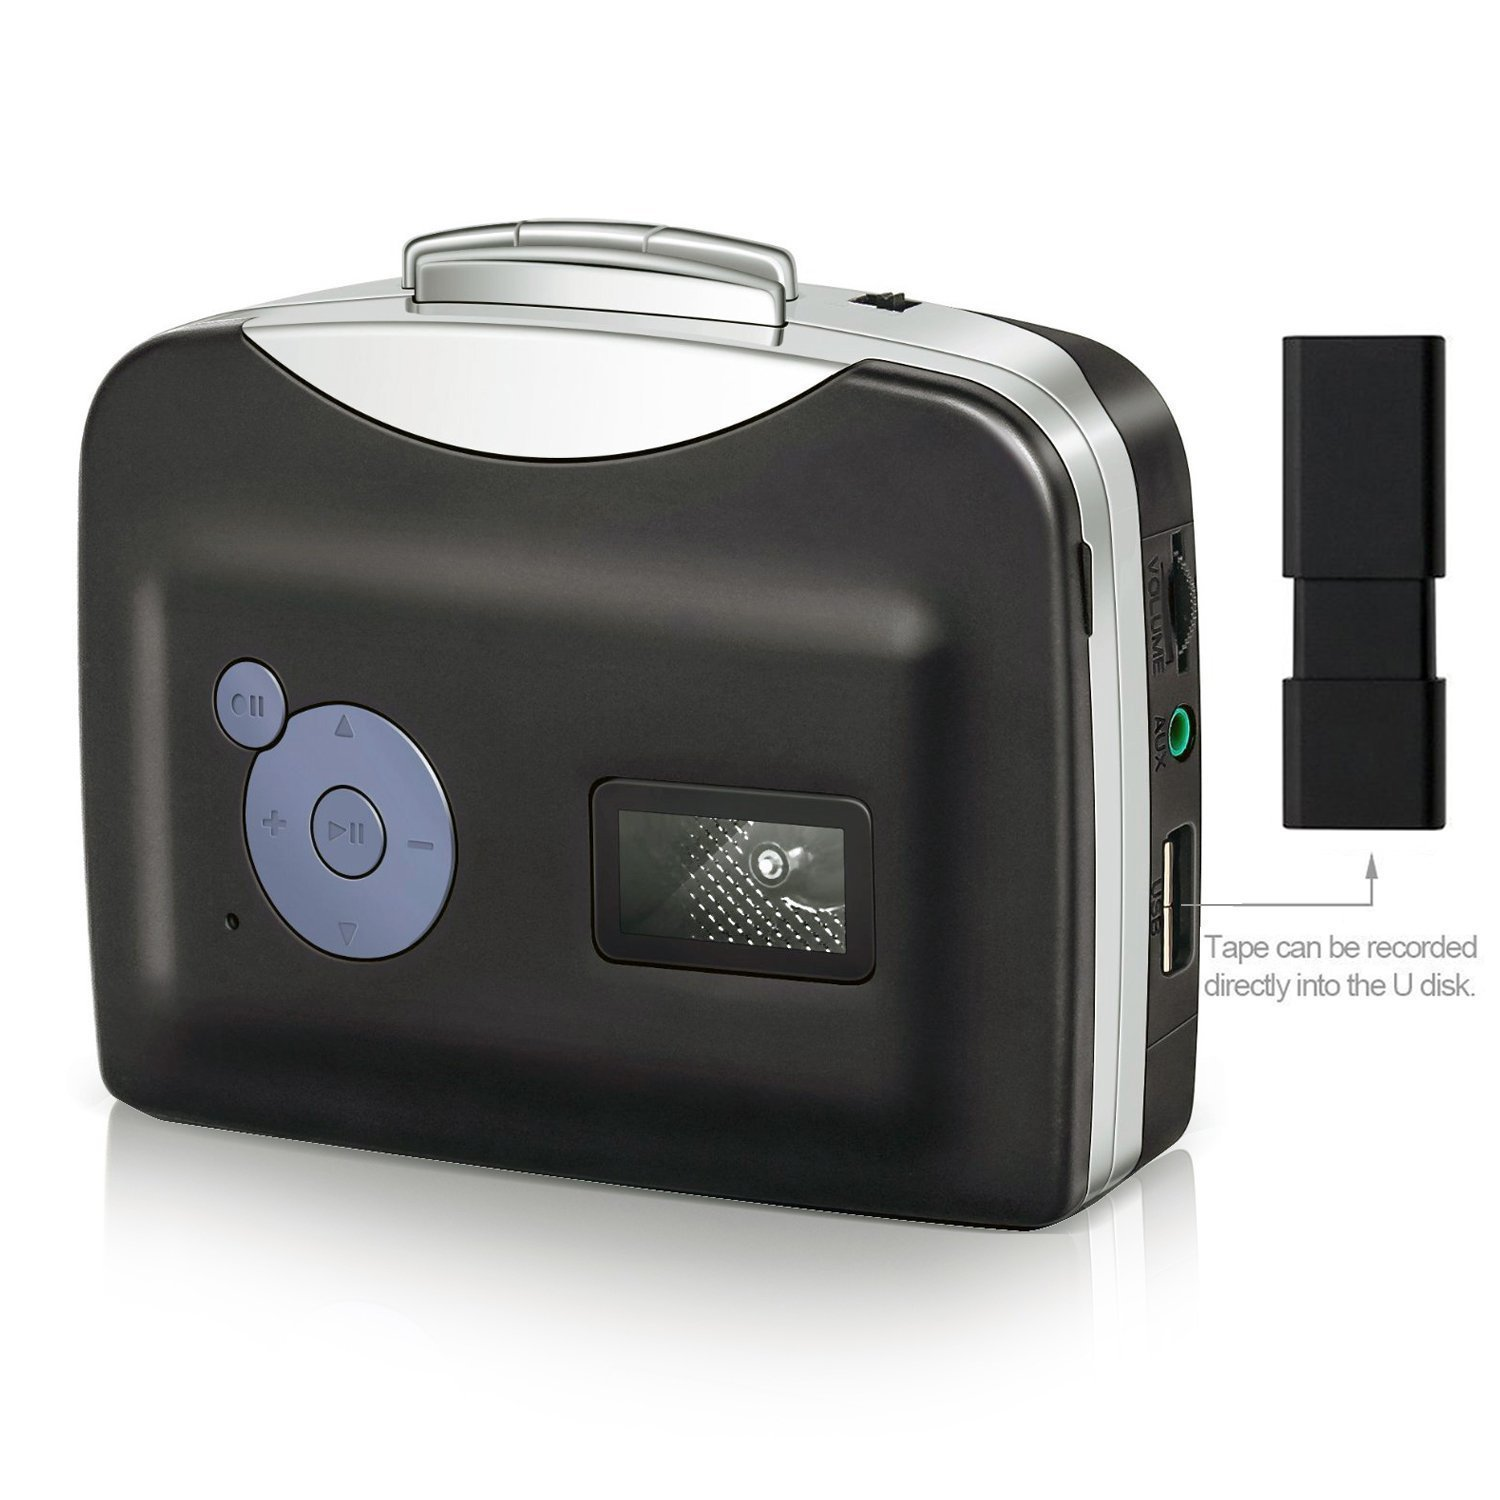 Portable Cassette Converter Portable Cassette to MP3 Converter Stereo USB Cassette Digital tape MP3 Music Player to MP3 Format with Headphones No PC Required